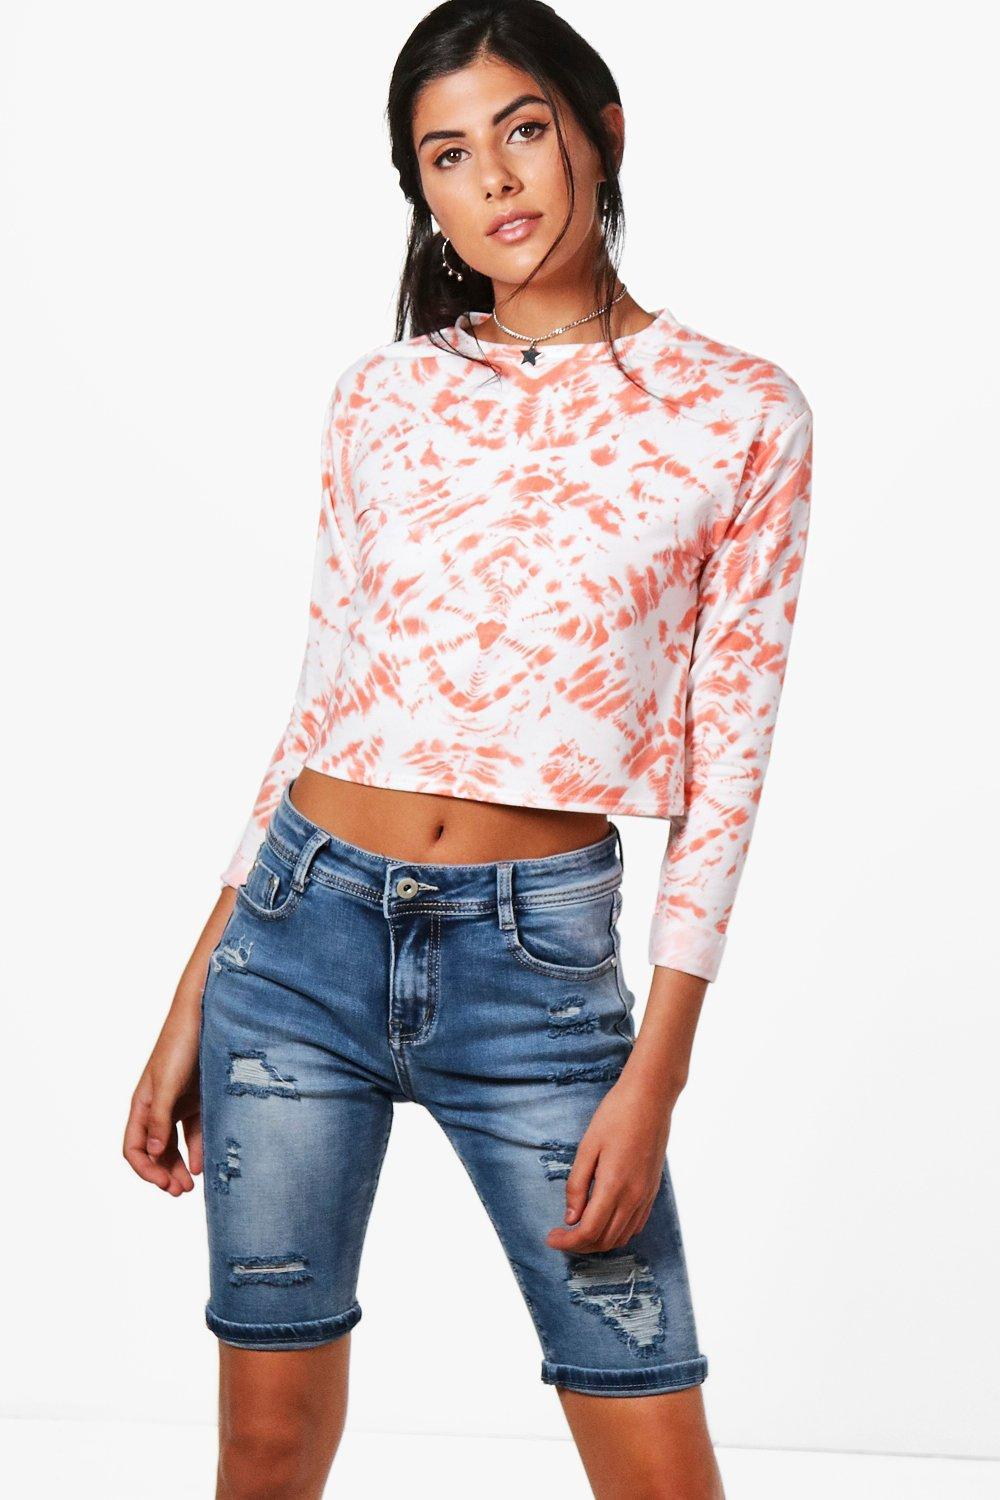 Boohoo Ripped Distressed Bermuda Shorts Cheap Price Outlet Sale Inexpensive Popular Sale Online 3PJ2Rui